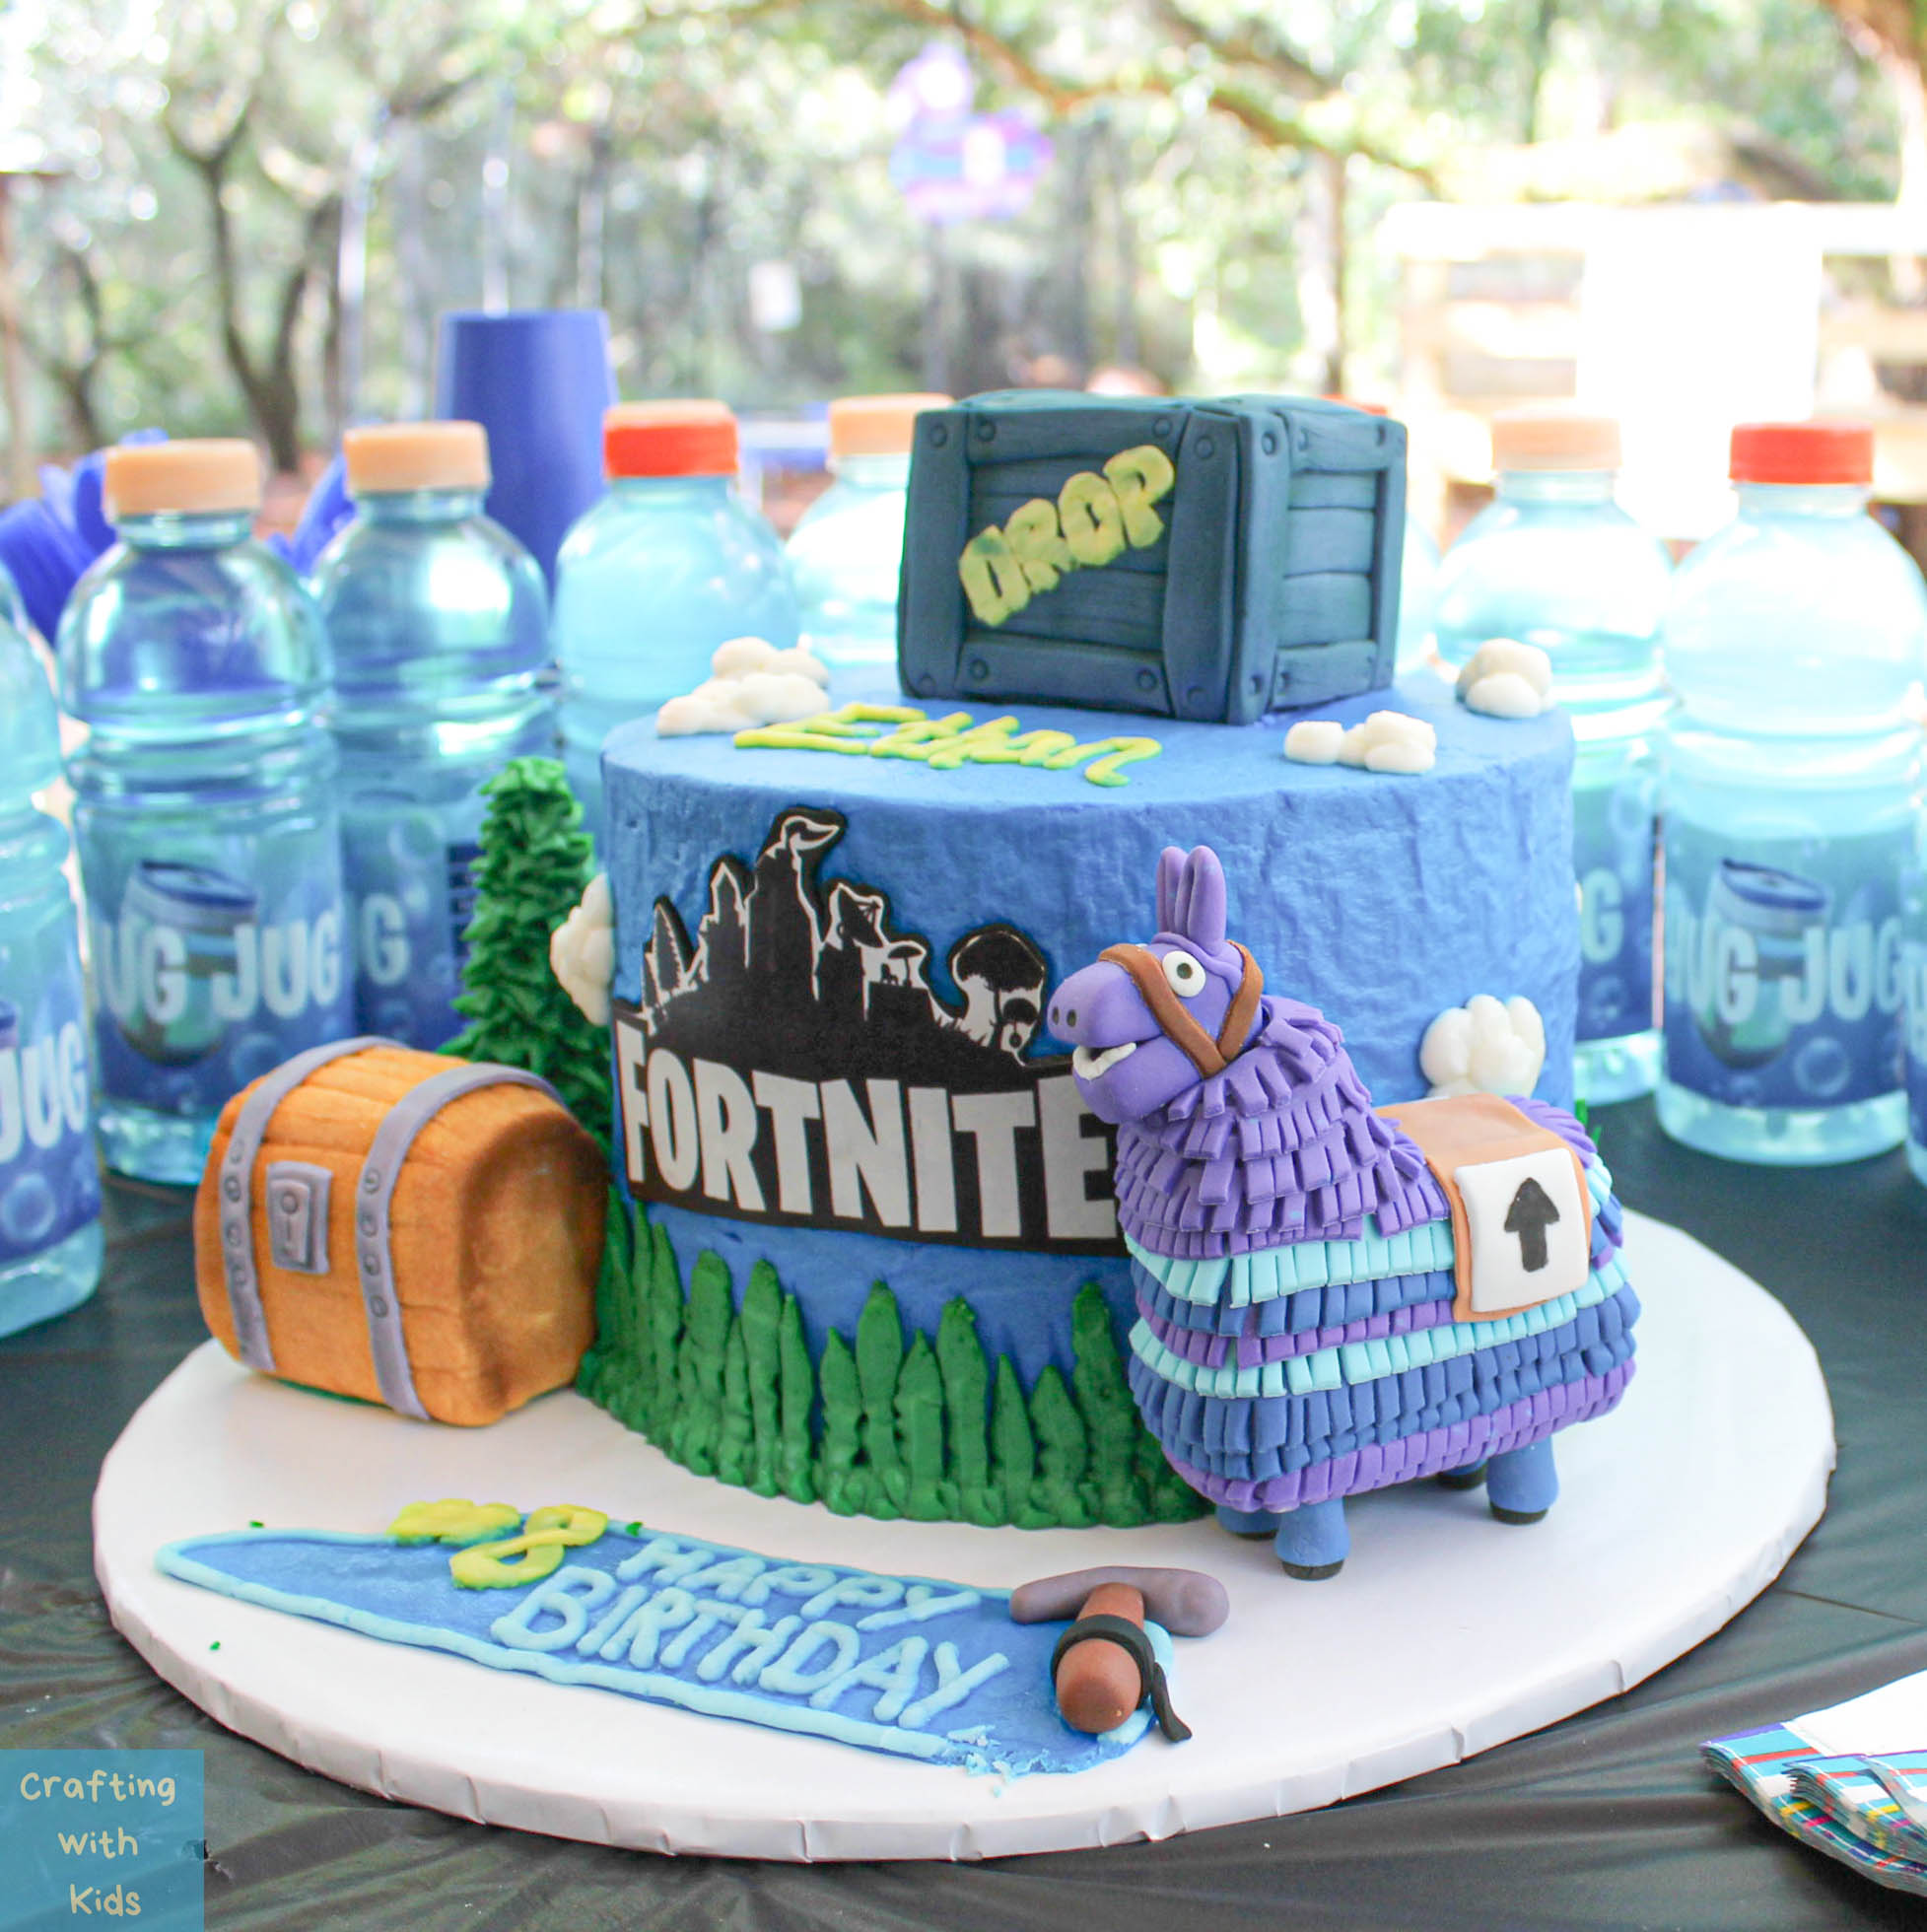 Fortnite birthday party